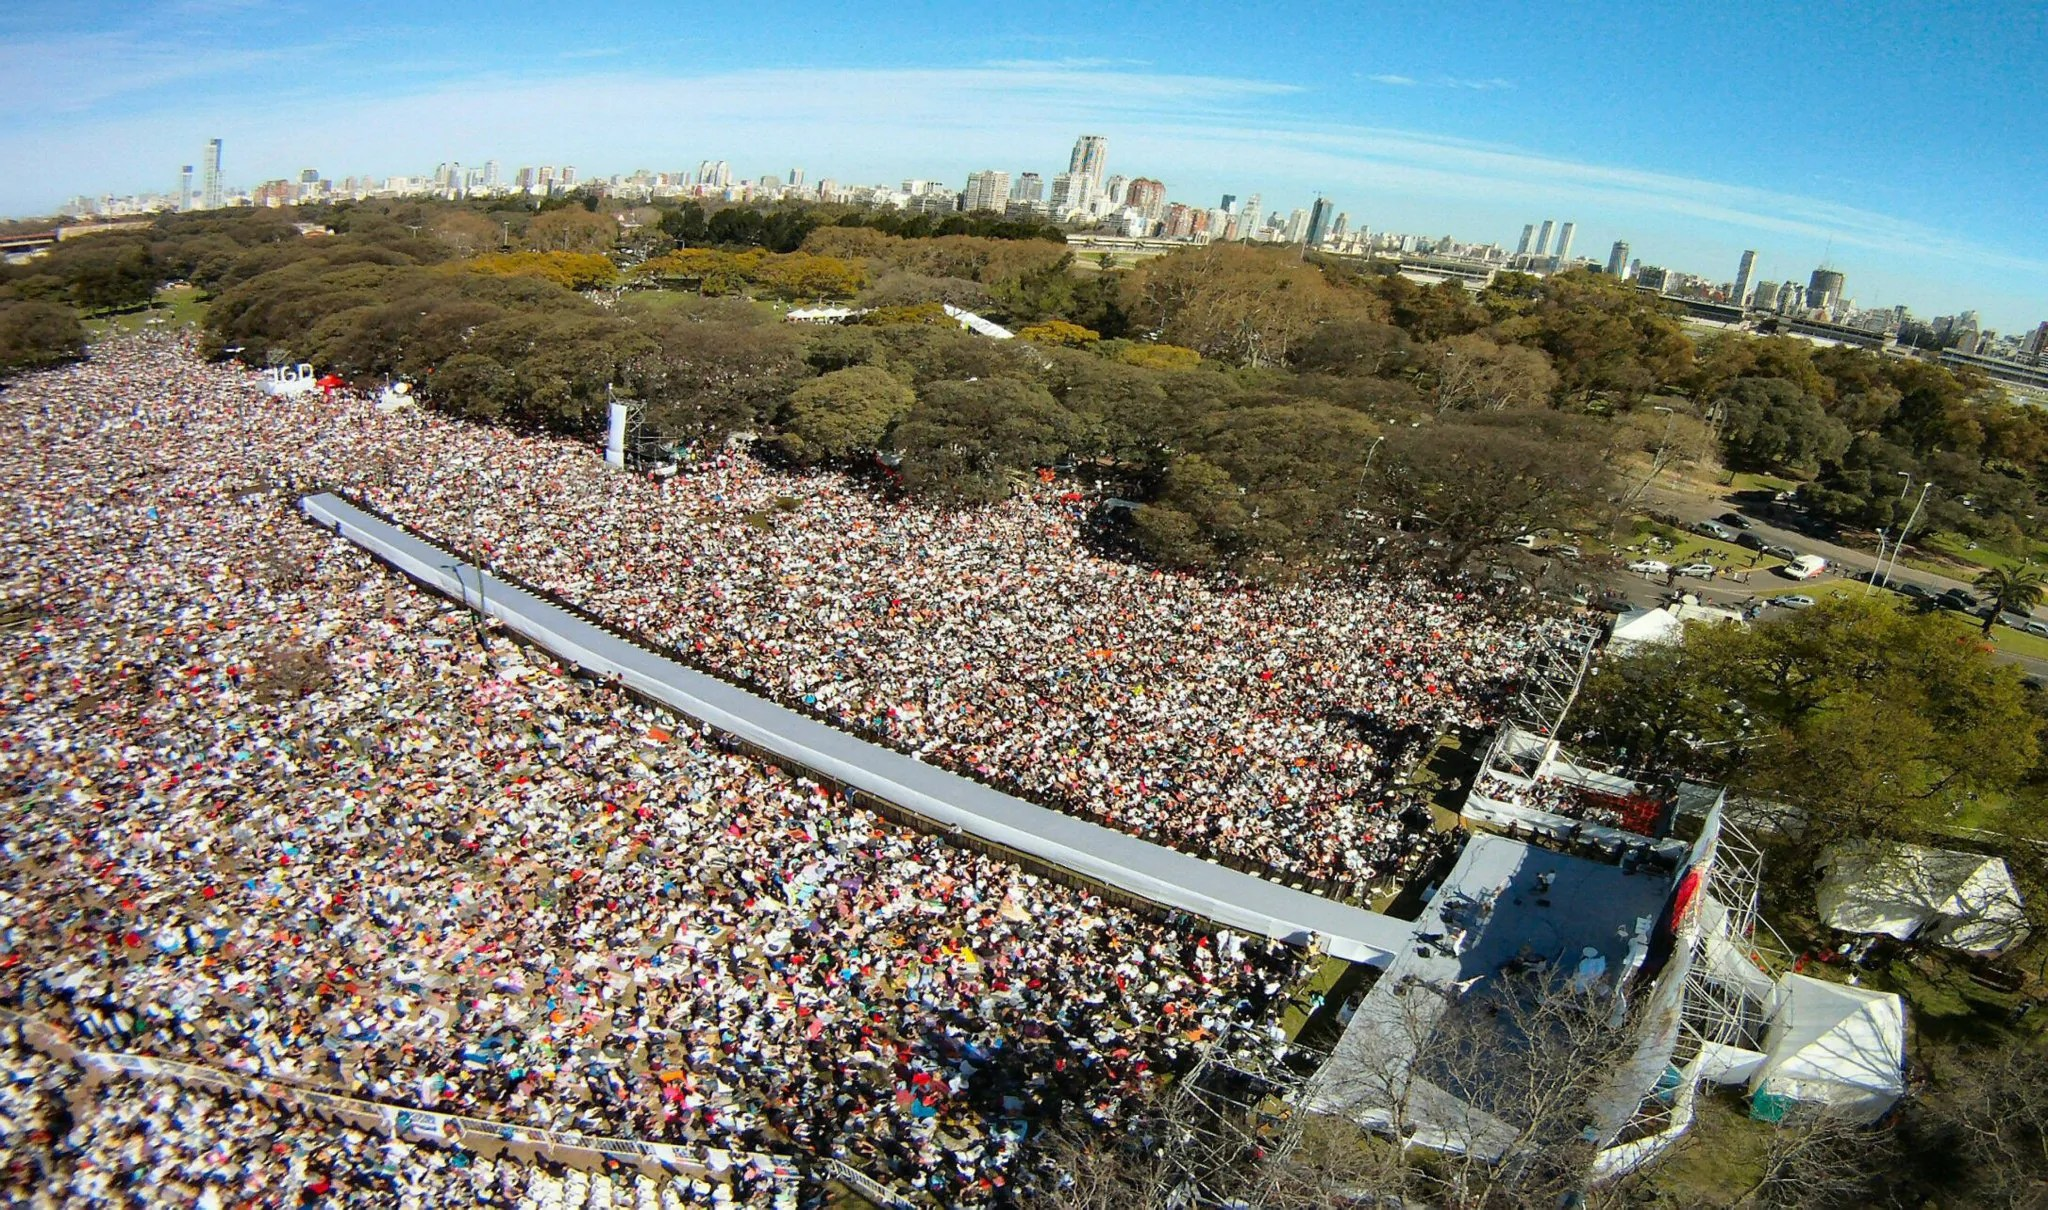 150,000 Meditators Come Together for Peace